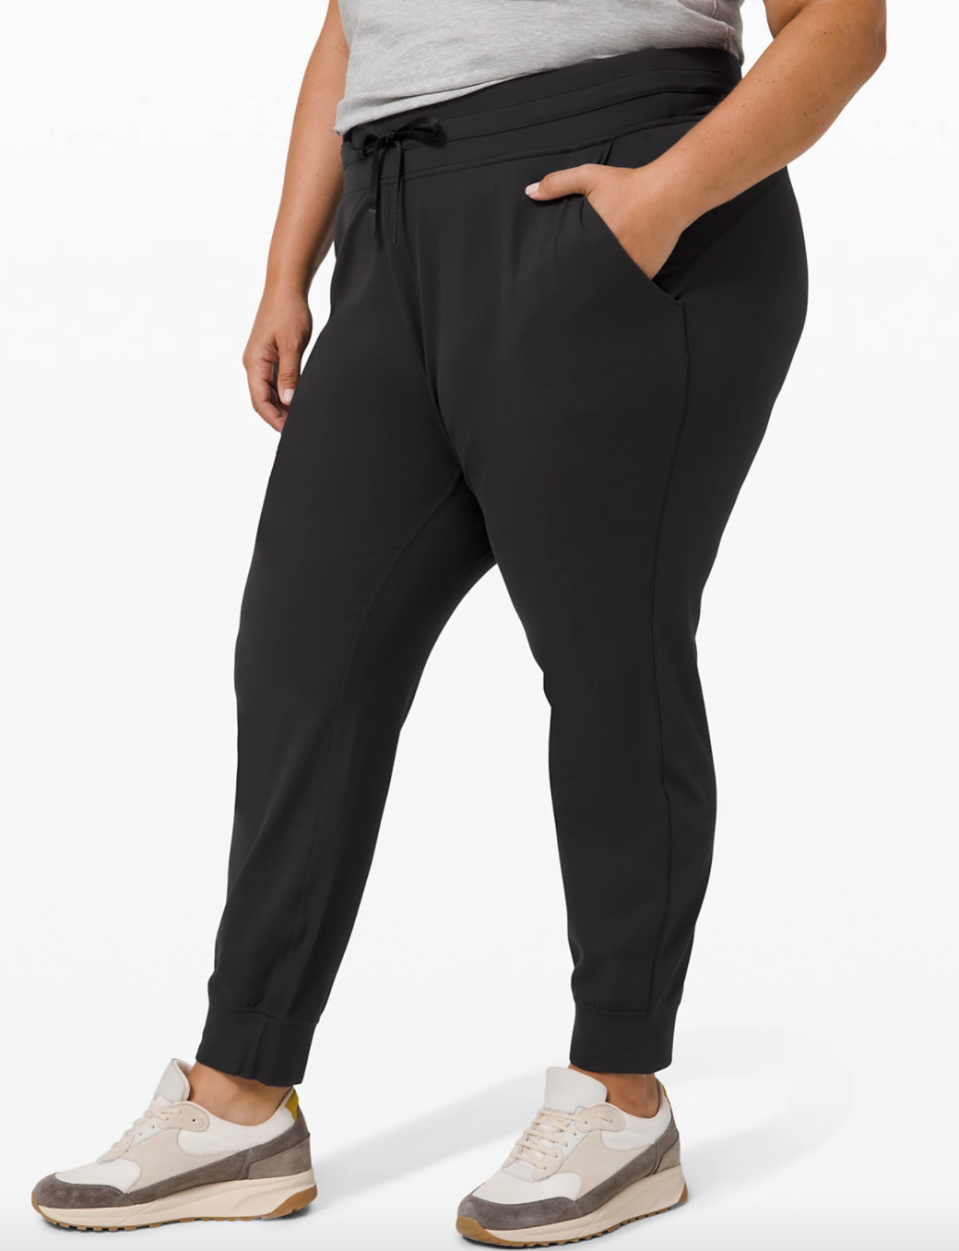 "Ready to Rulu Jogger 29"" in Size 20. $108. Image via Lululemon."